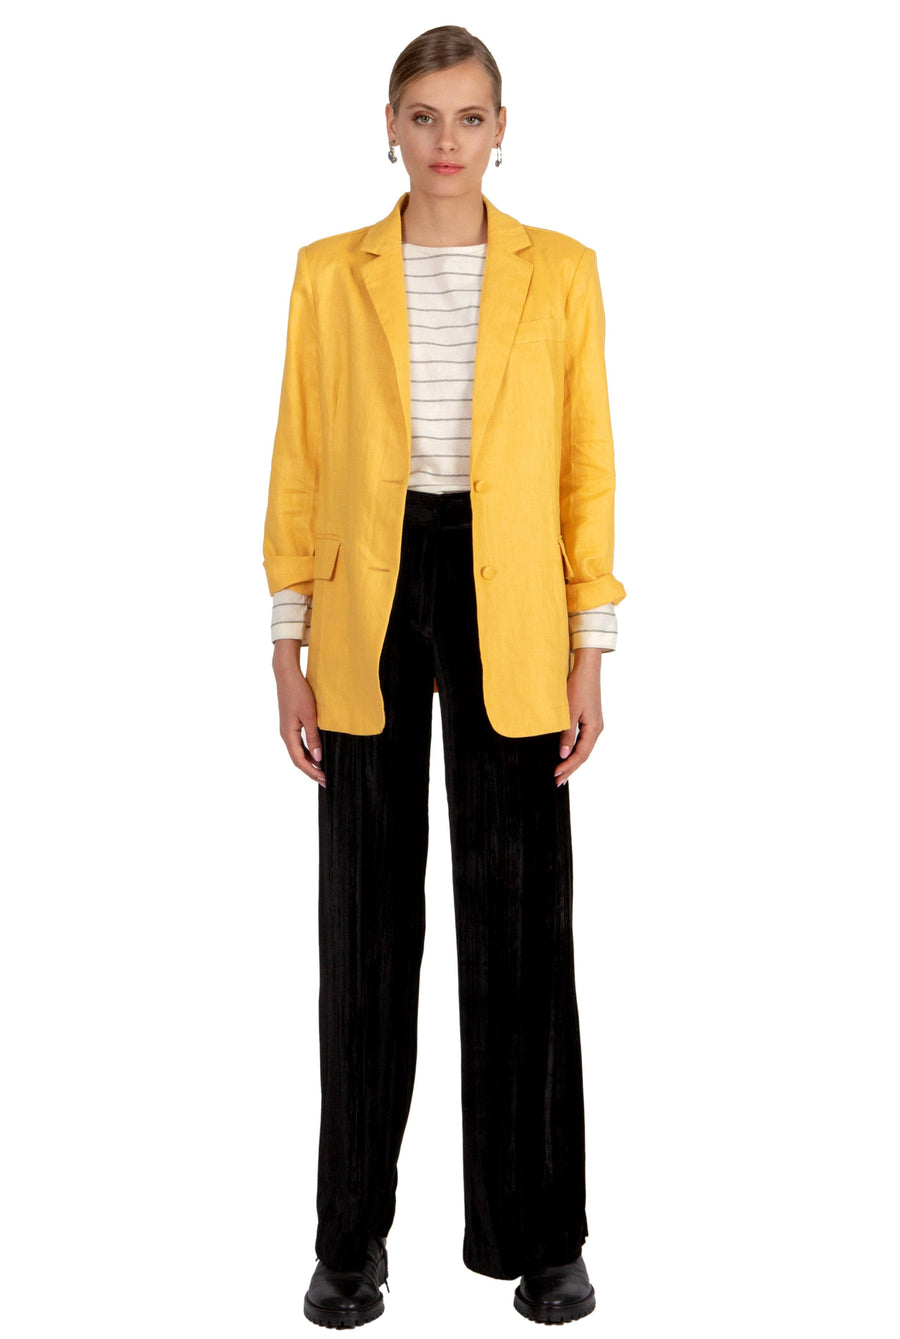 AOTC Pierre Yellow Blazer